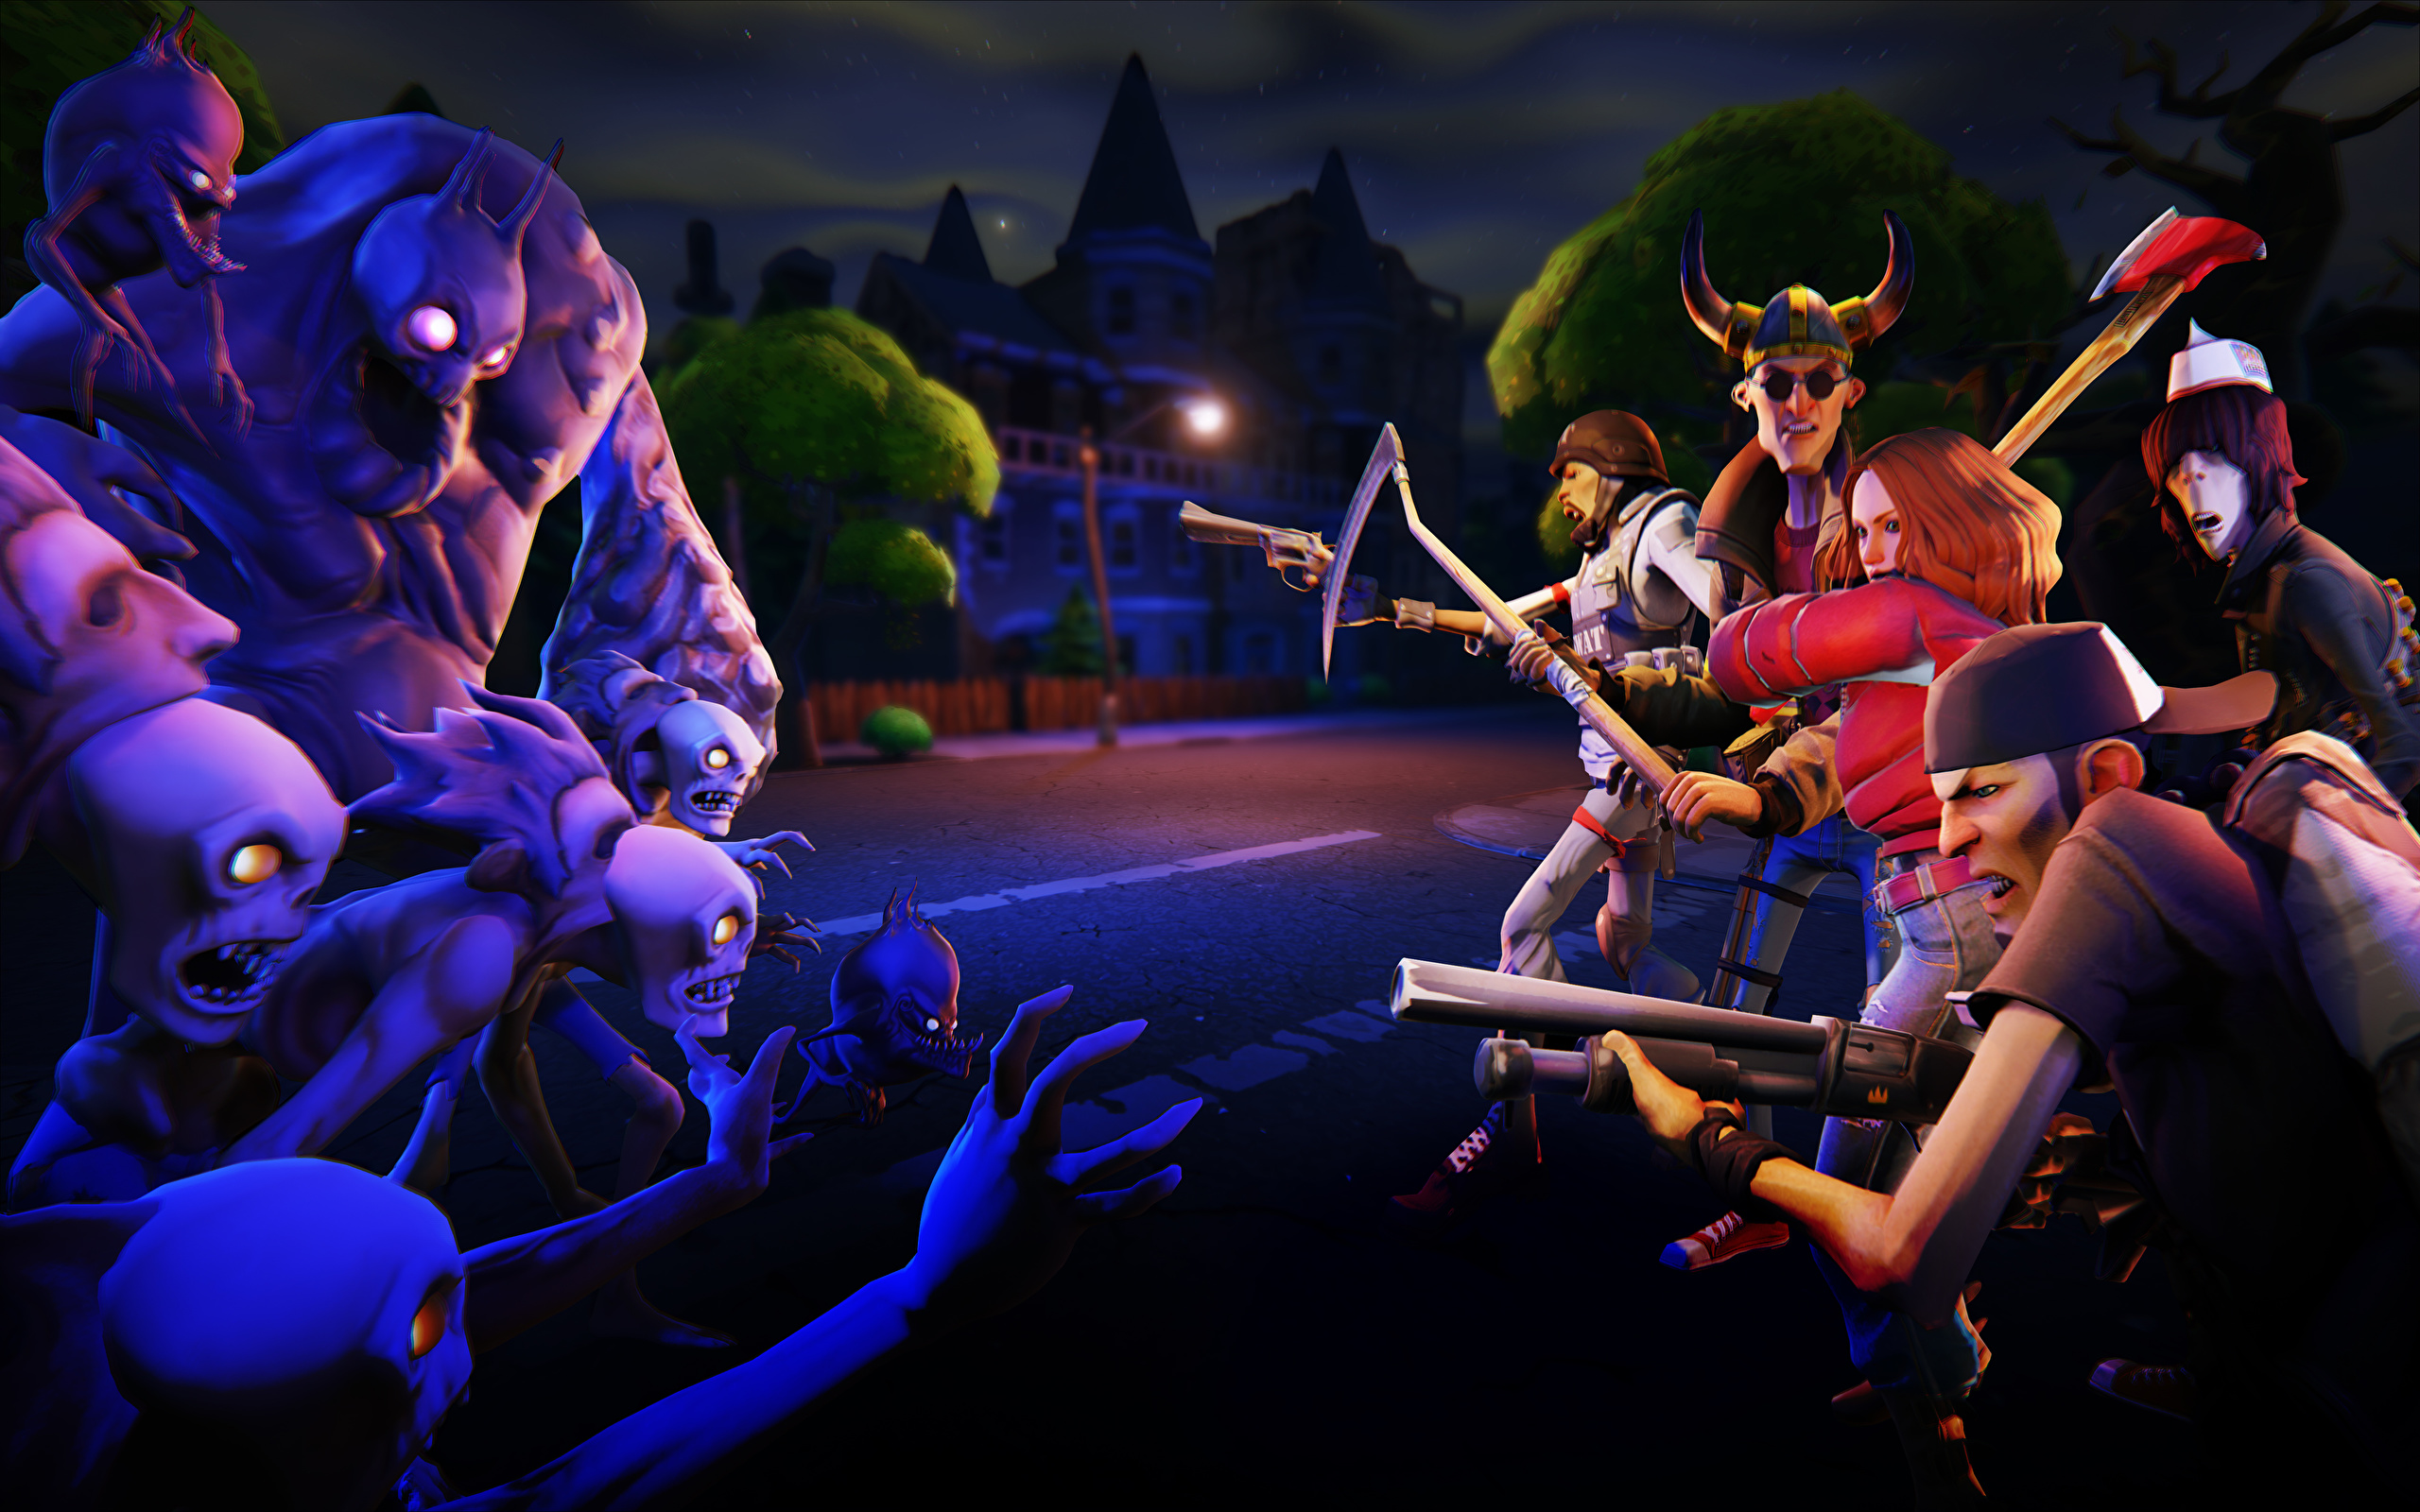 Wallpapers Monsters Fortnite Epic Games Survival sandbox 2560x1600